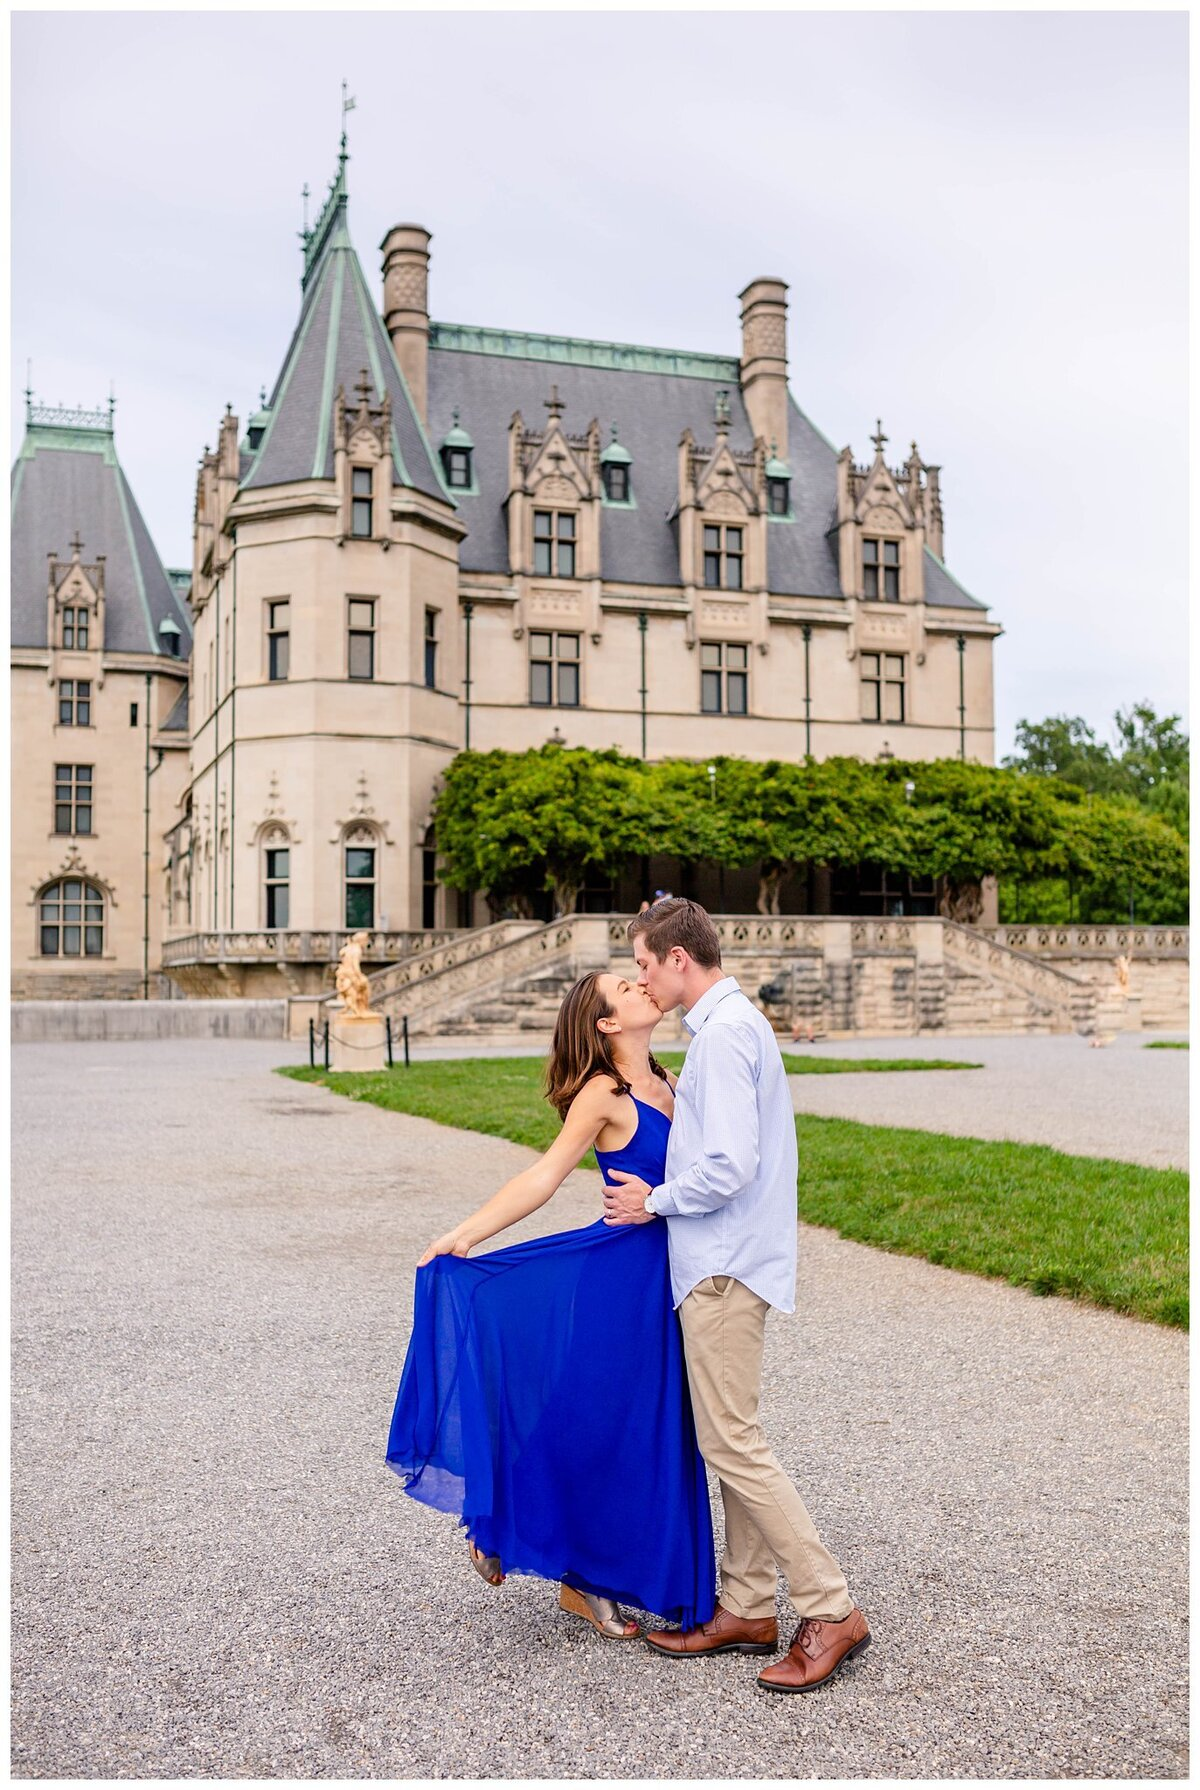 Biltmore Estate Anniversary - Asheville Wedding Photographer - Tracy Waldrop Photography_0003